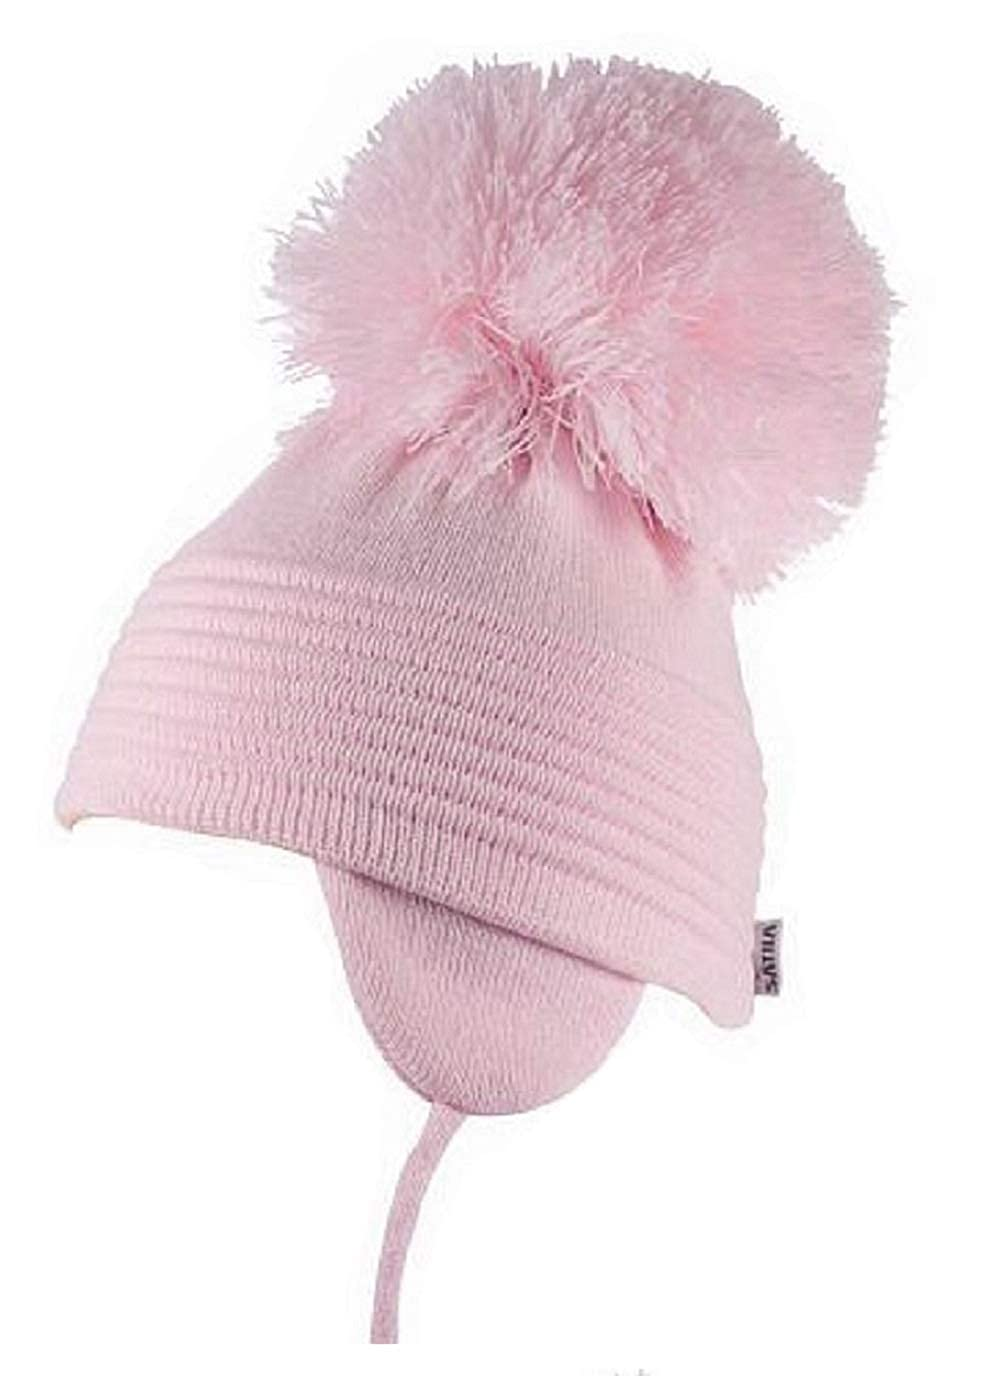 f877f057d Satila-Of-Sweden Boys Girls Large Pom Pom Hat Style 'Millie' 4 Colours to  Choose from. White, Pink, Light Blue, Cream.